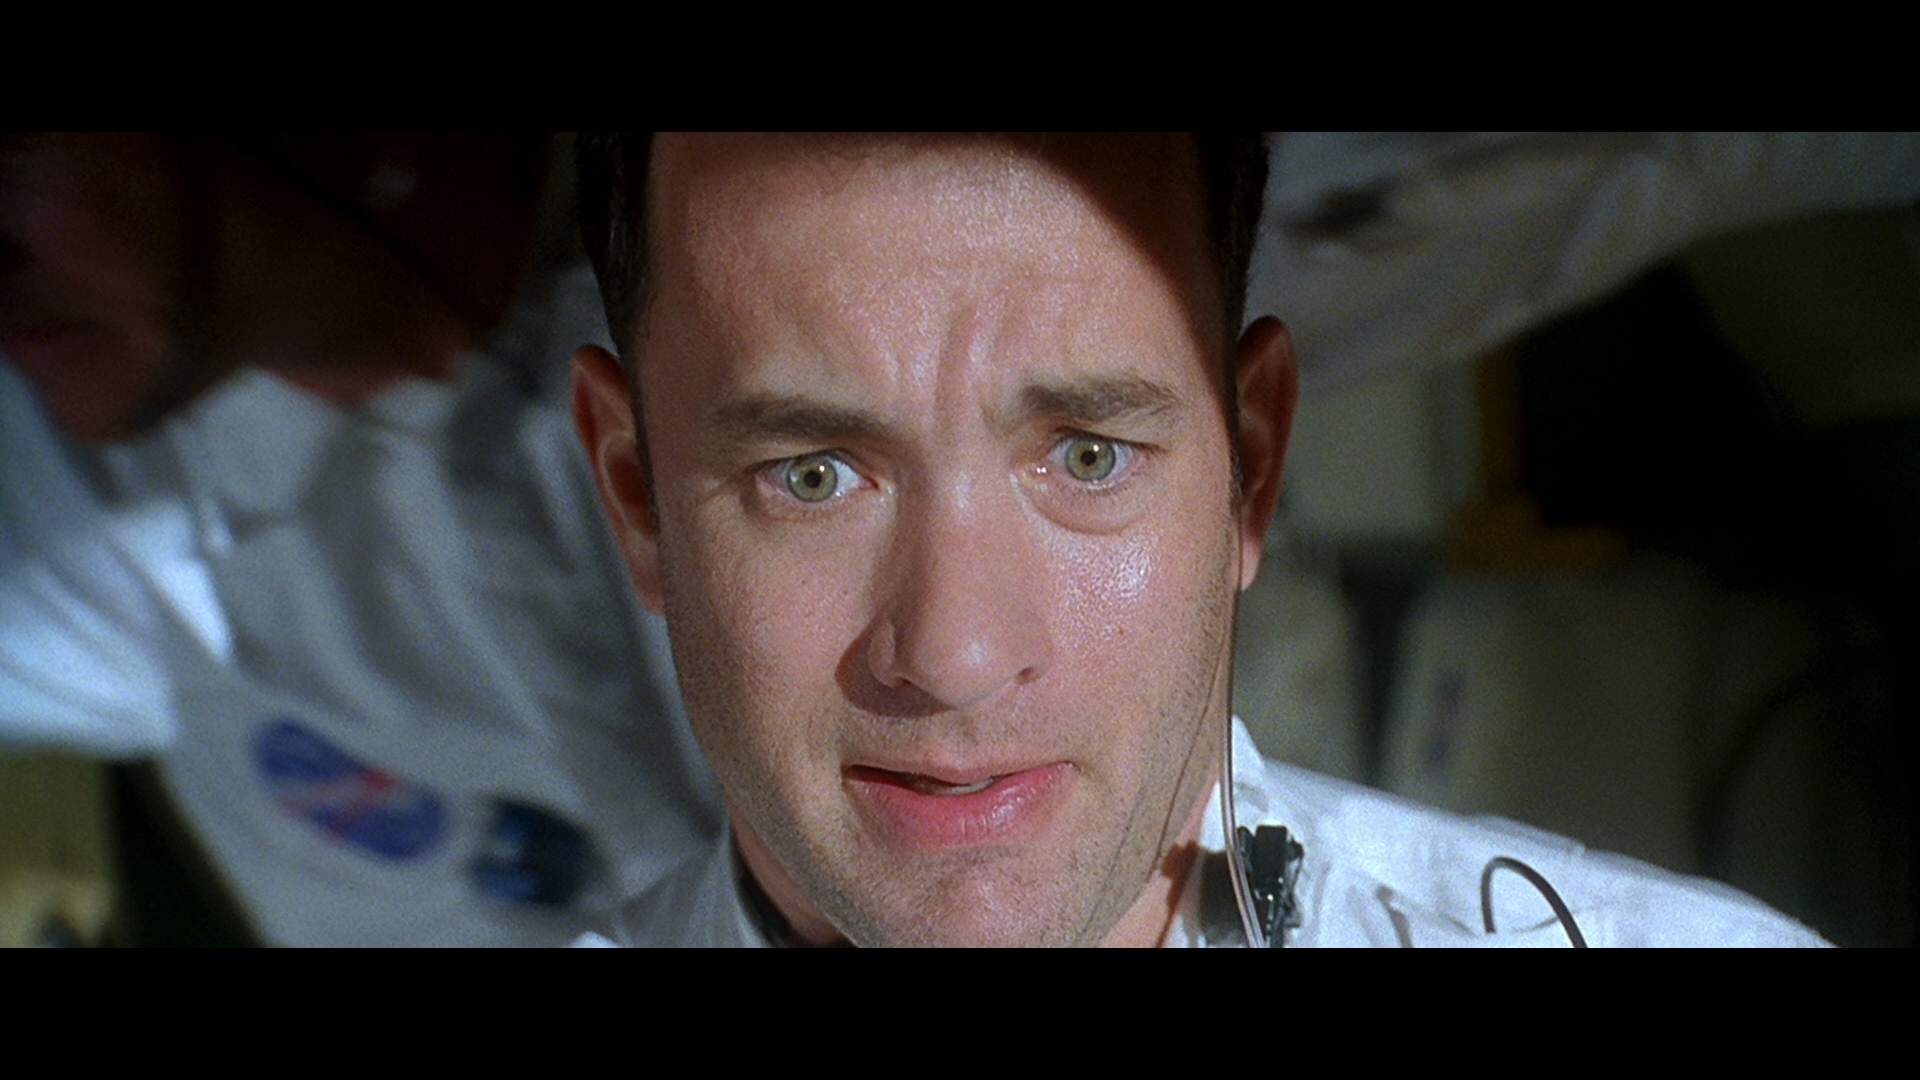 determination in the movie apollo 13 essay Apollo 13 is one of my favorite movies for several reasons and here is a short rant: the movie was robbed at the 1995 oscars it could have been best picture and either ed harris or karen quinlan could have won best supporting actor/actress.